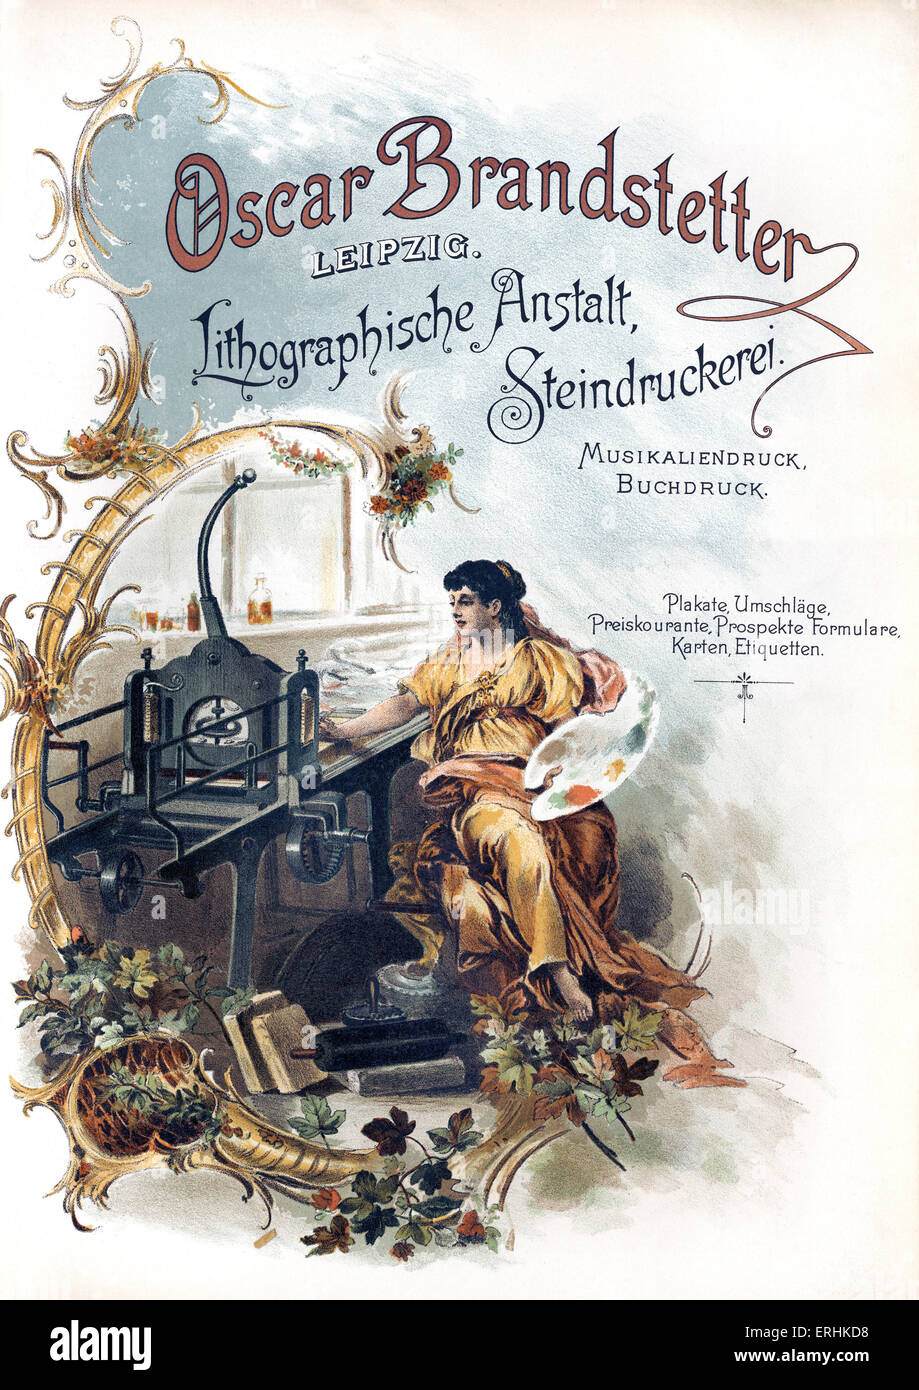 Oscar Branstetter printing works advertisement - from 1902 catalogue. Printing works in Leipzig. Advert shows factory - Stock Image